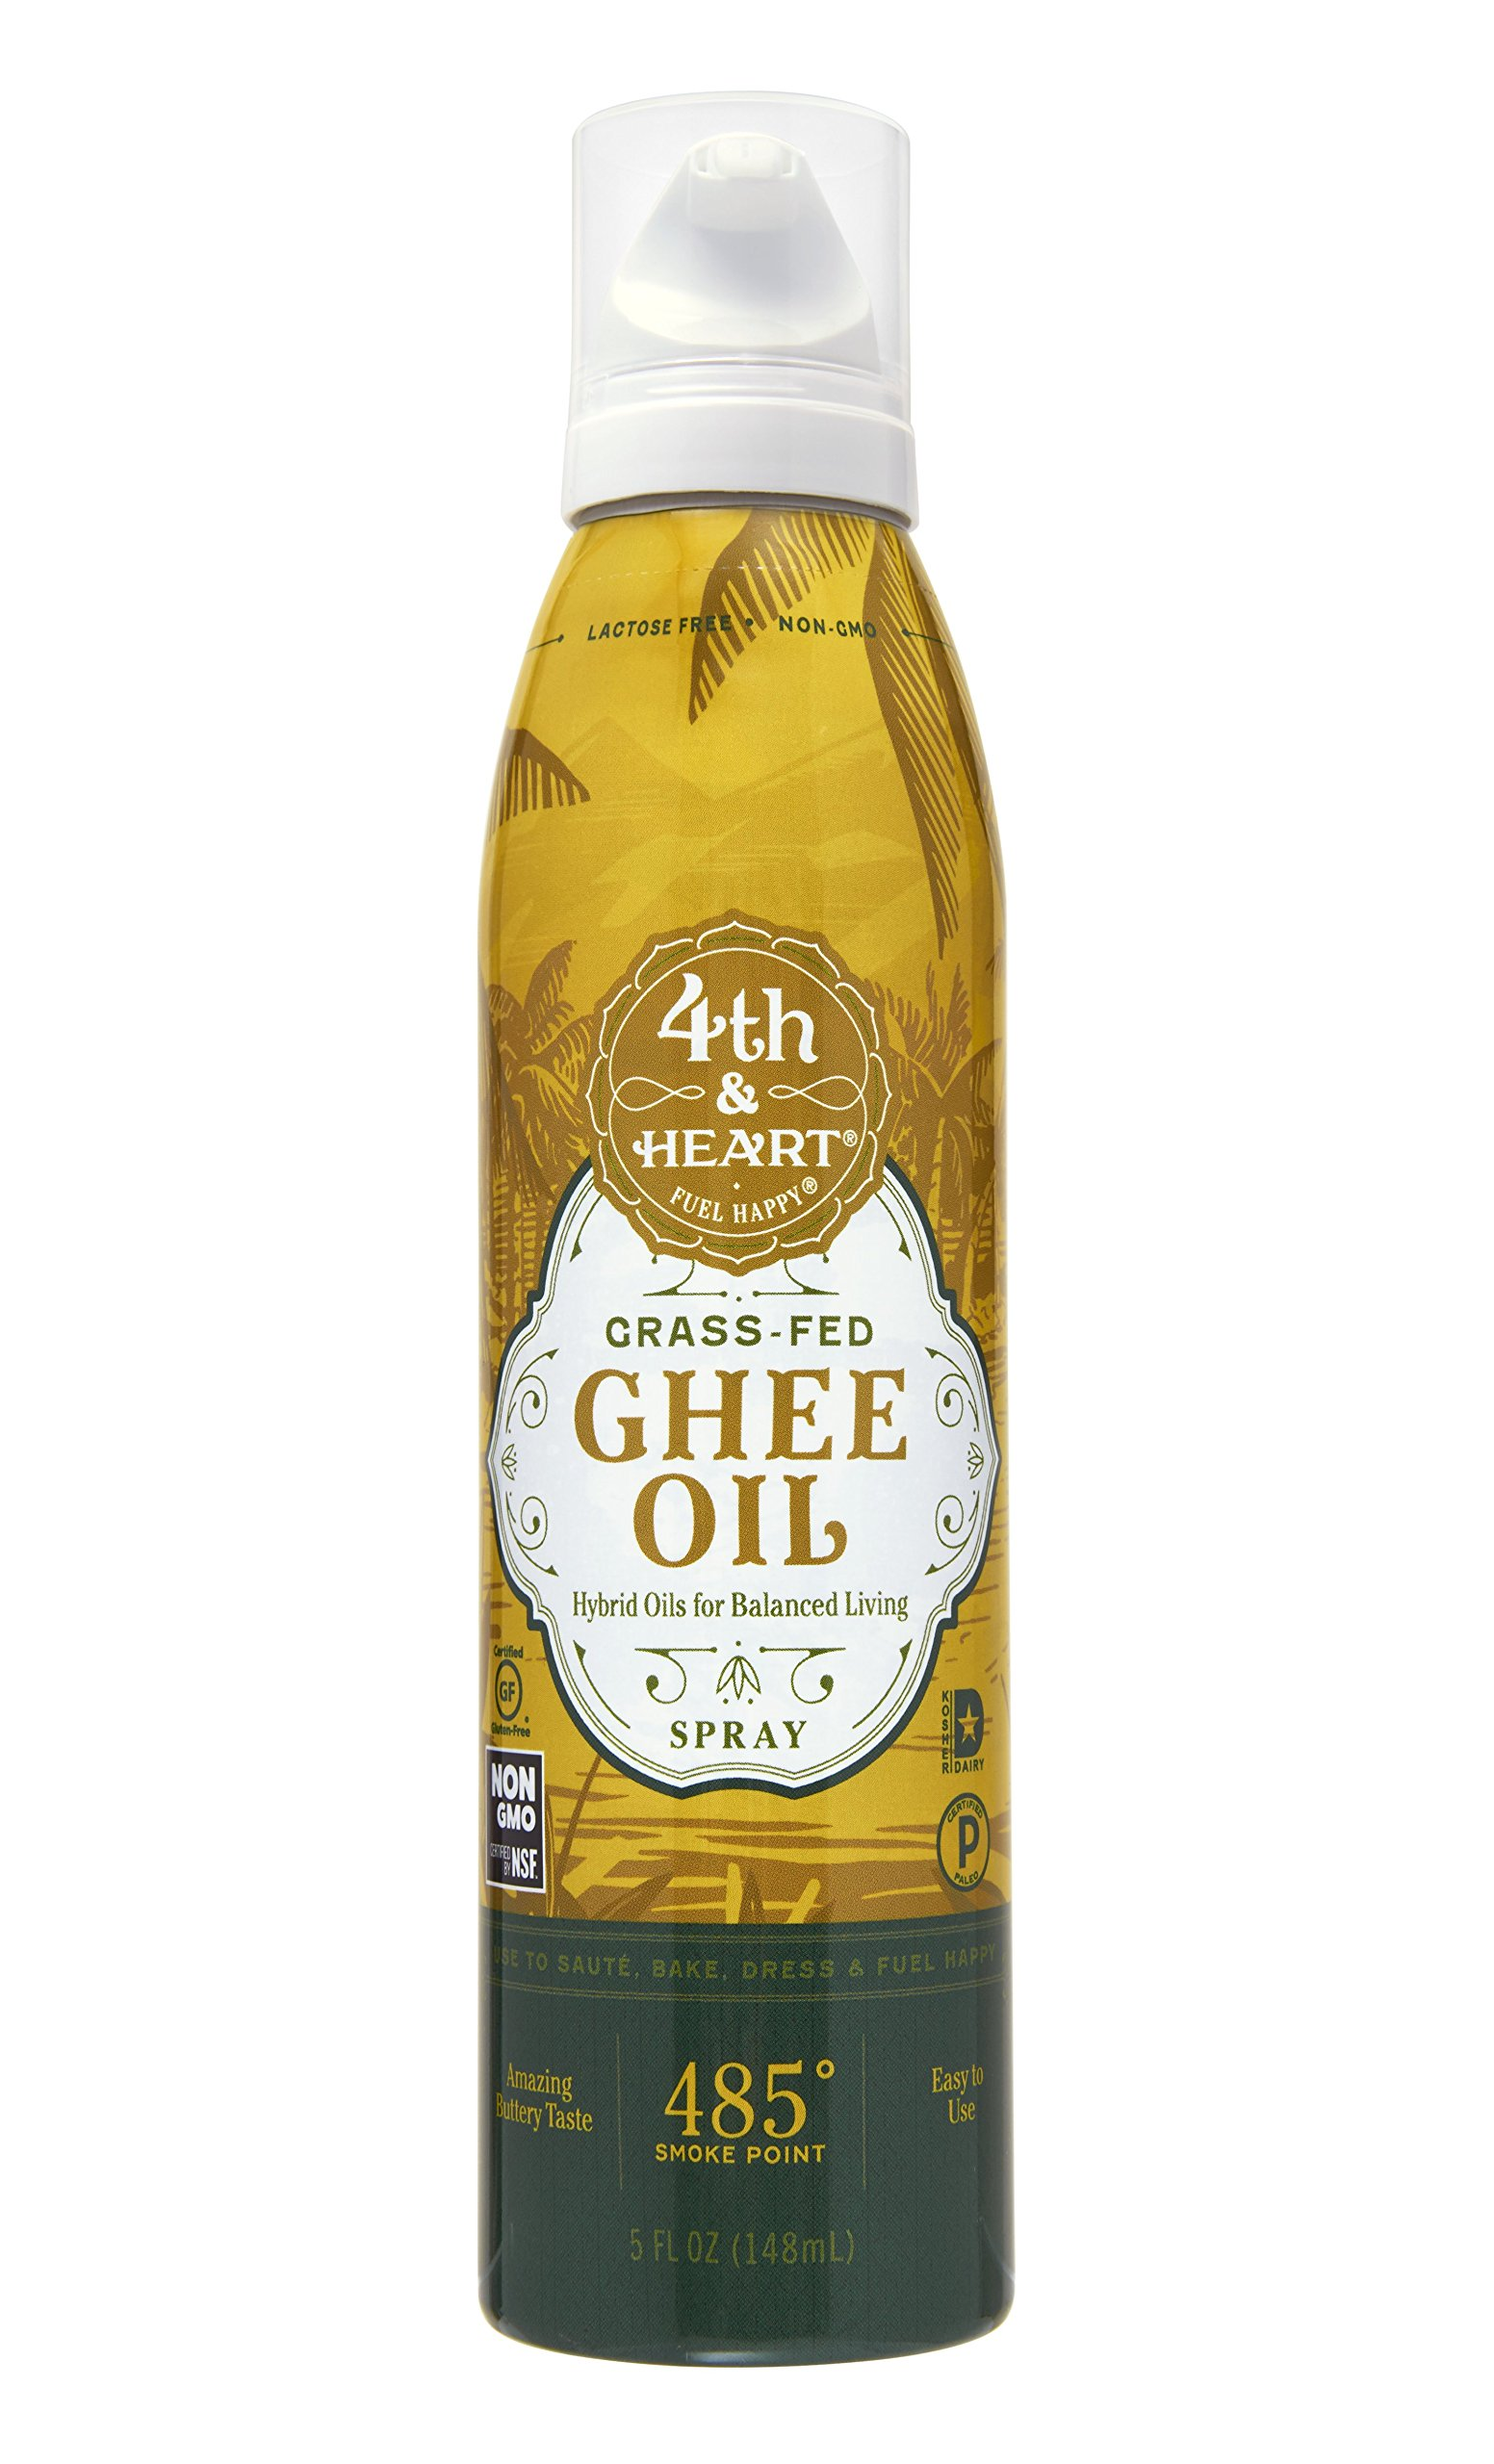 4th & Heart OIL GHEE SPRAY 5OZ